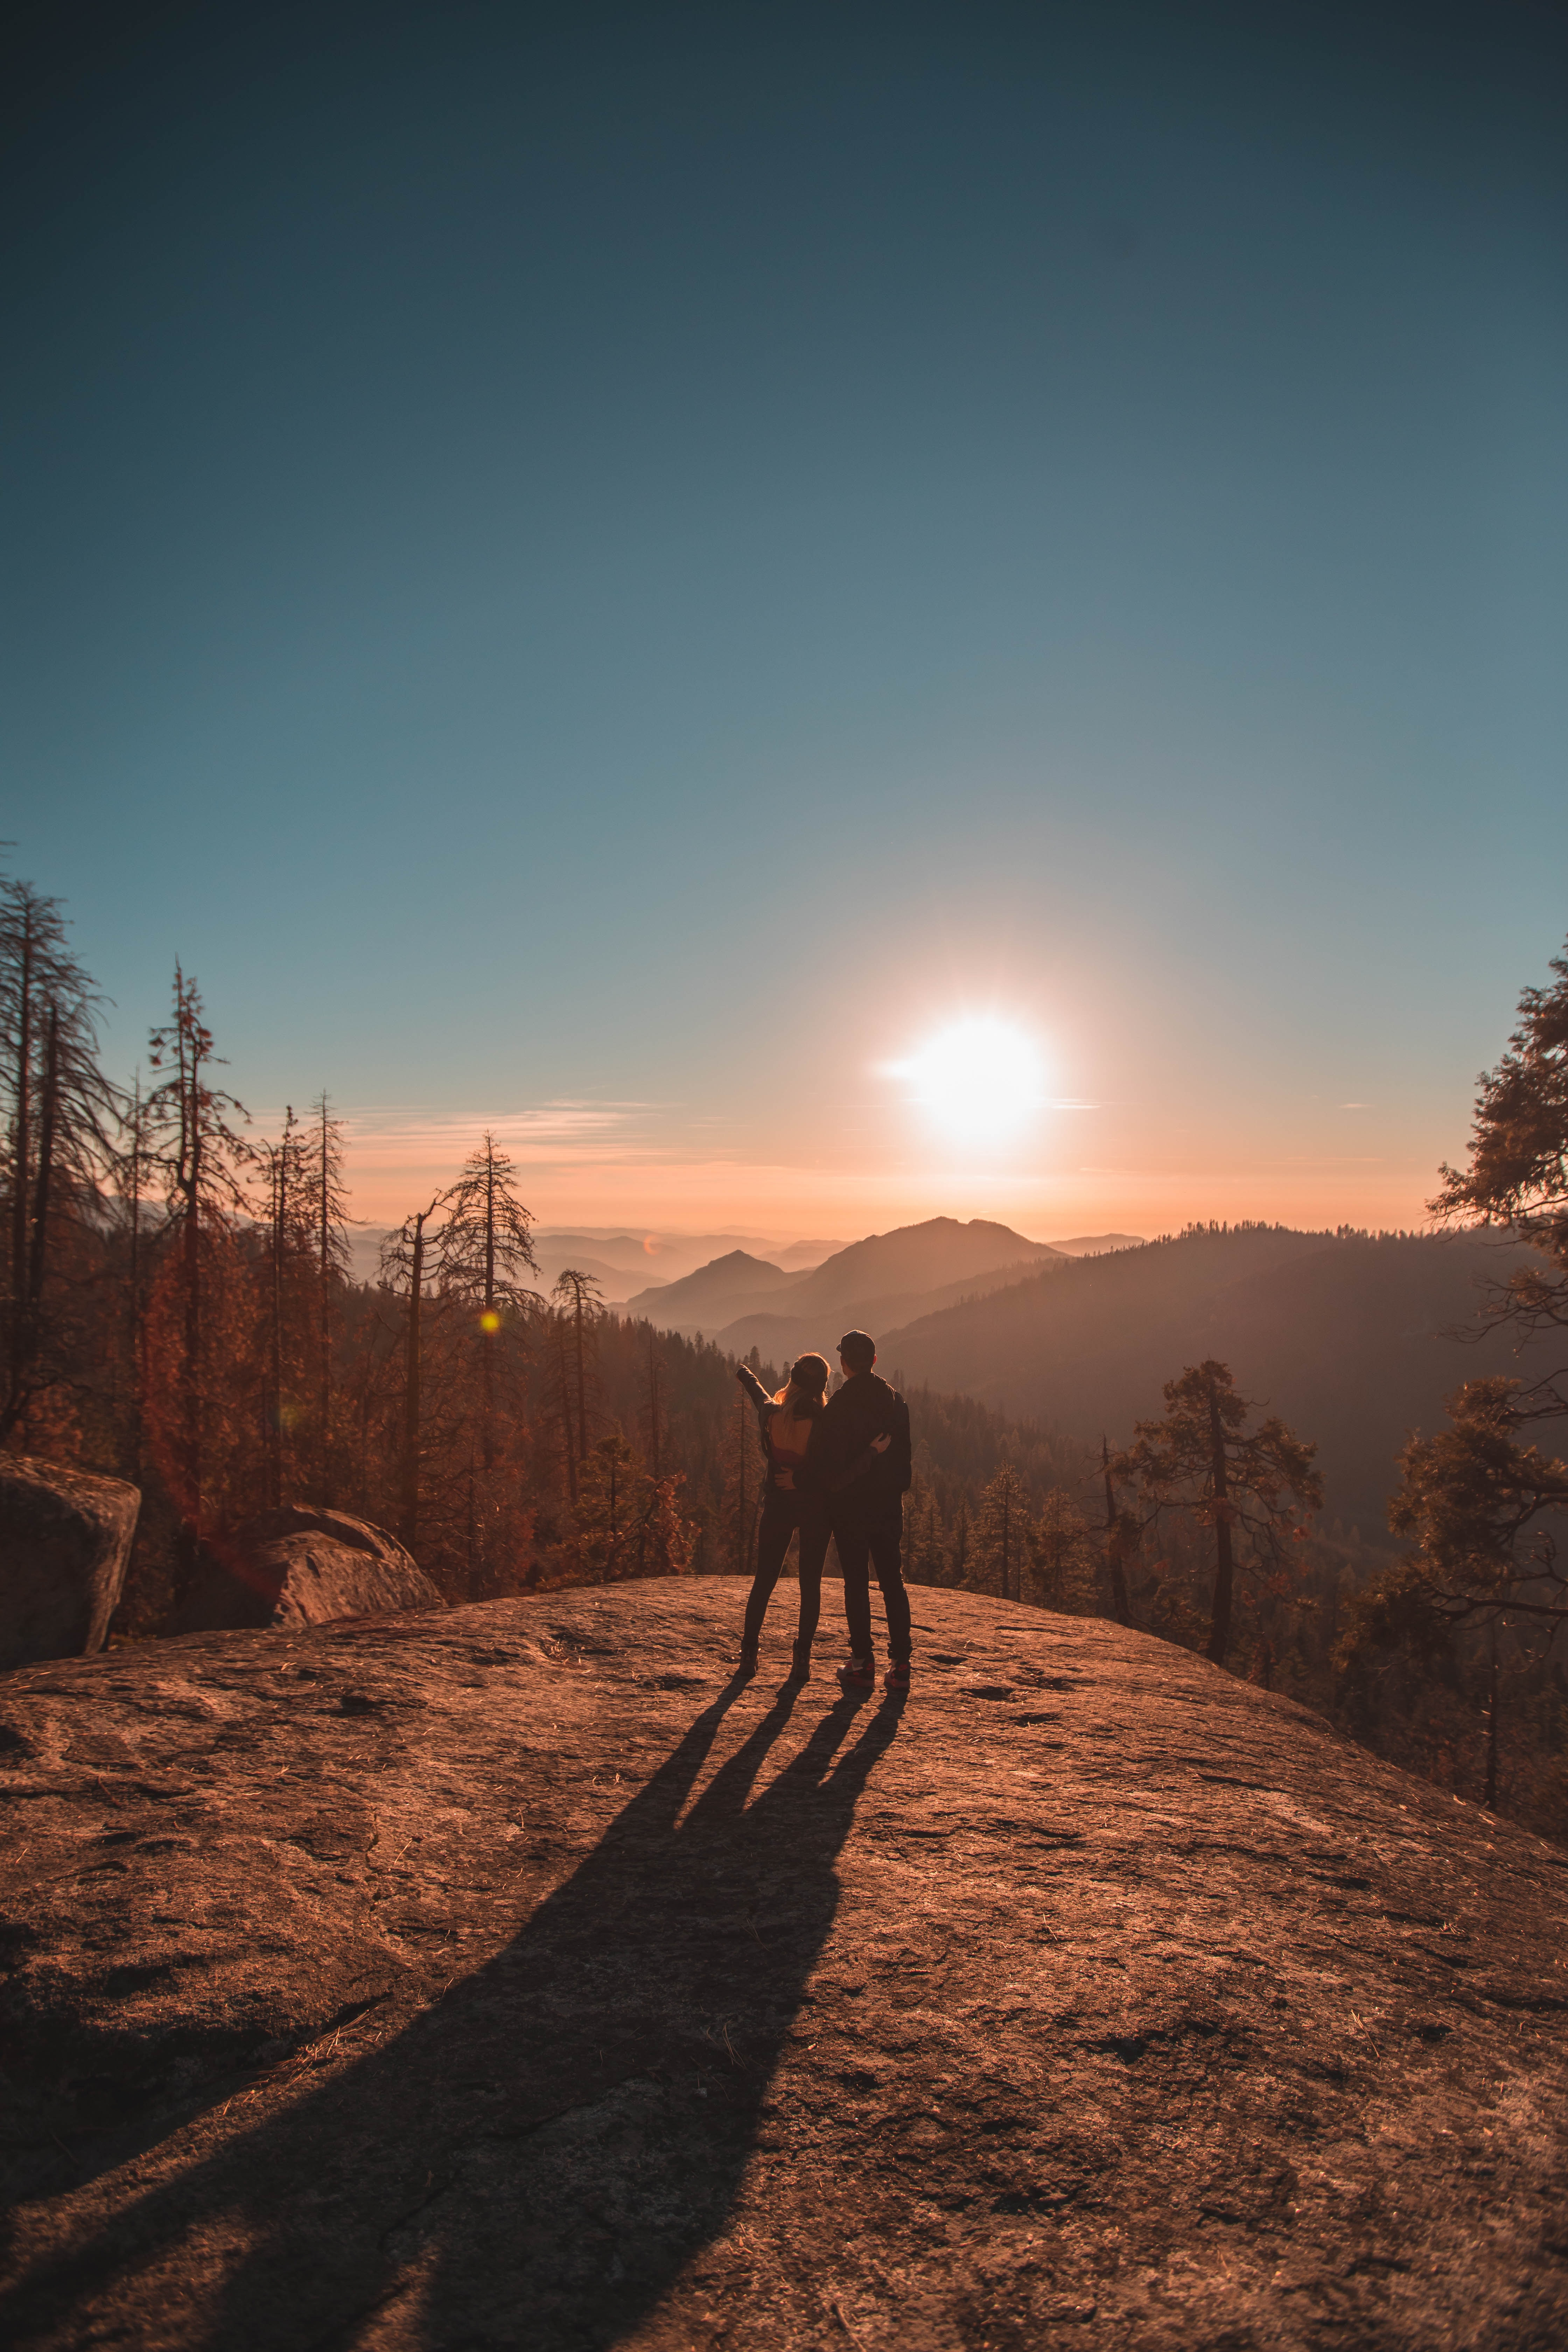 112083 download wallpaper Love, Couple, Pair, Journey, Sunset, Sequoia, National Park, Usa, United States, Mountains screensavers and pictures for free